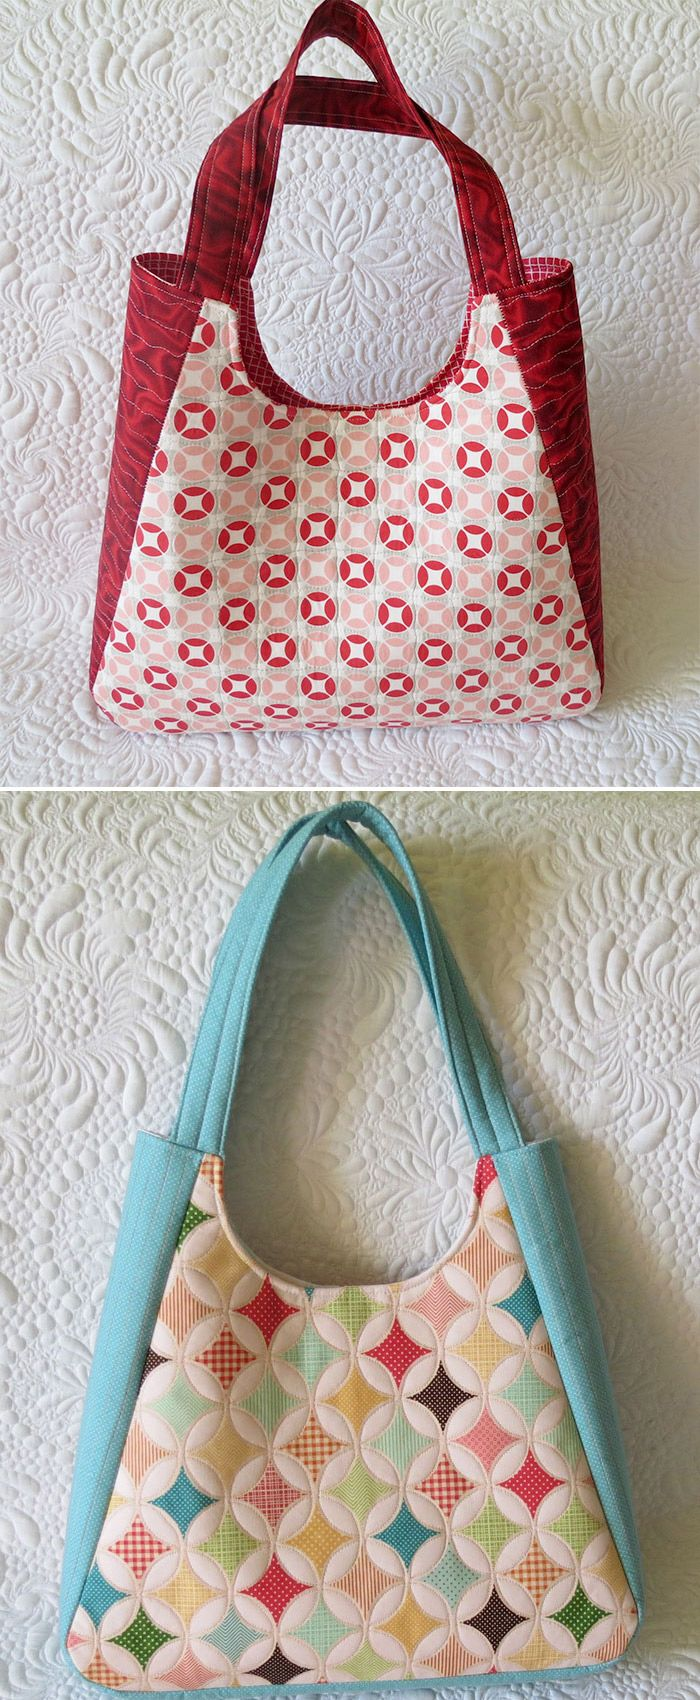 9046719f0b7 Tote bag pattern for roomy bags with zippered pocket on the back ( three  sizes are included) - this is the medium- everyday bag.